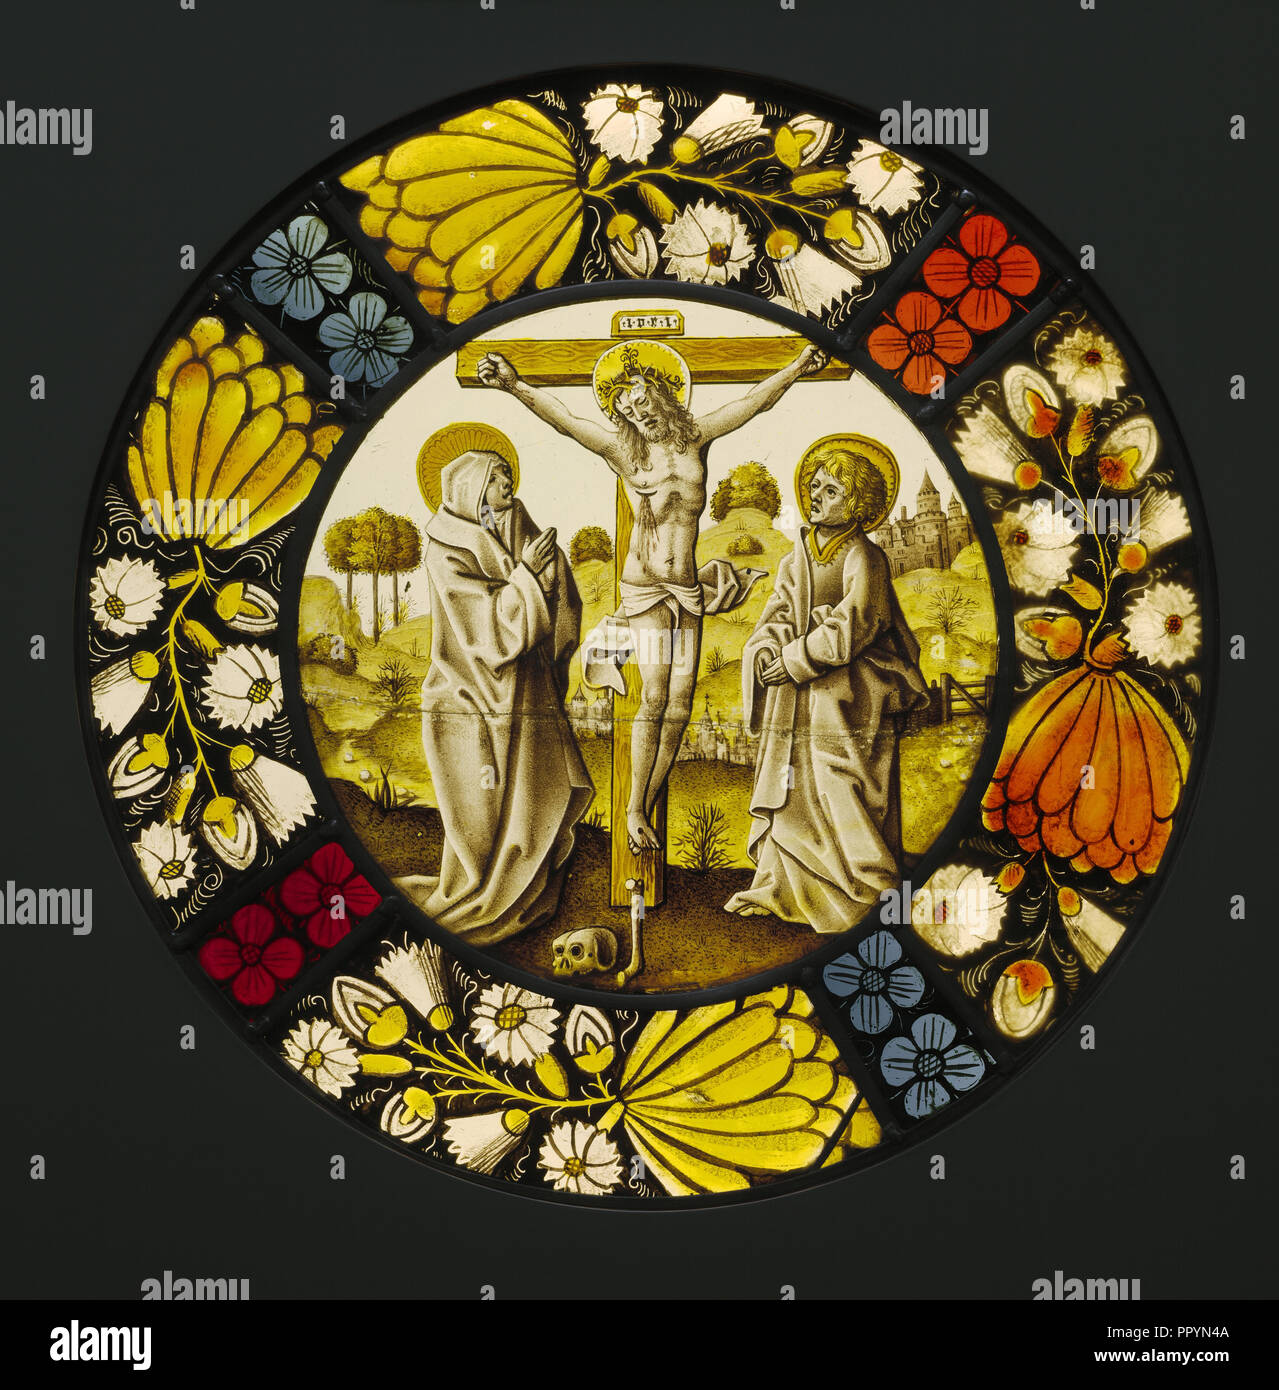 The Crucifixion; Netherlandish; South Netherlands; about 1490 - 1500; Pot-metal and colorless glass, vitreous paint, and silver - Stock Image